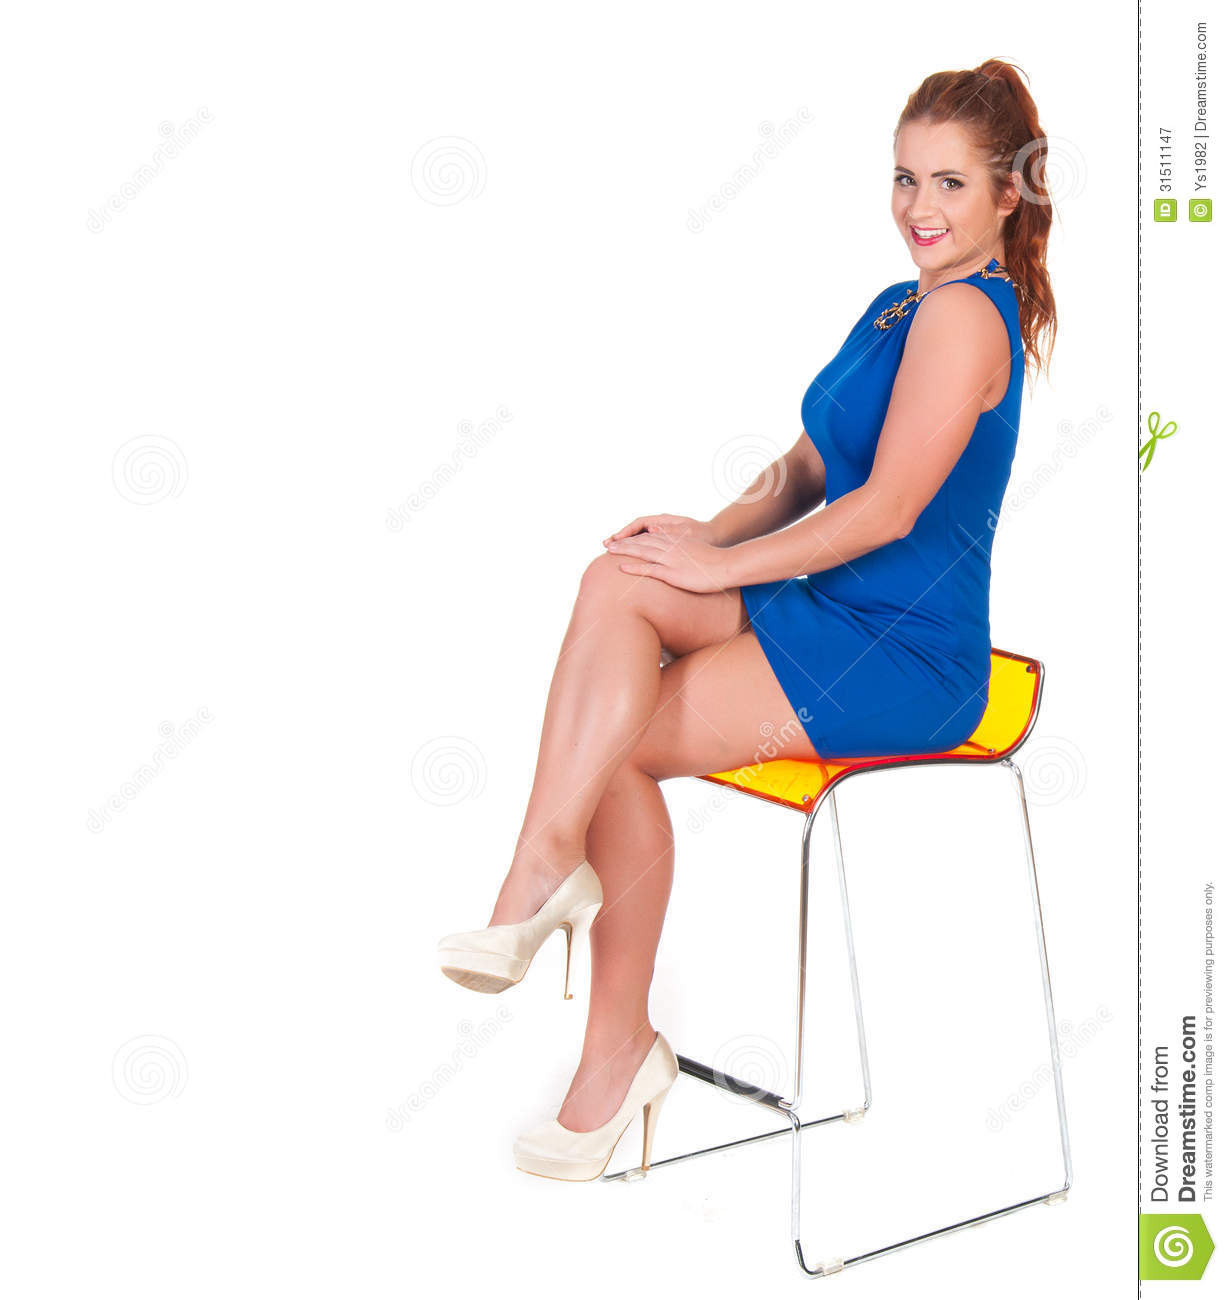 Beautiful Woman With Red Hairs Sitting On Bar Chair  : beautiful woman red hairs sitting bar chair over white background 31511147 from dreamstime.com size 1228 x 1300 jpeg 85kB